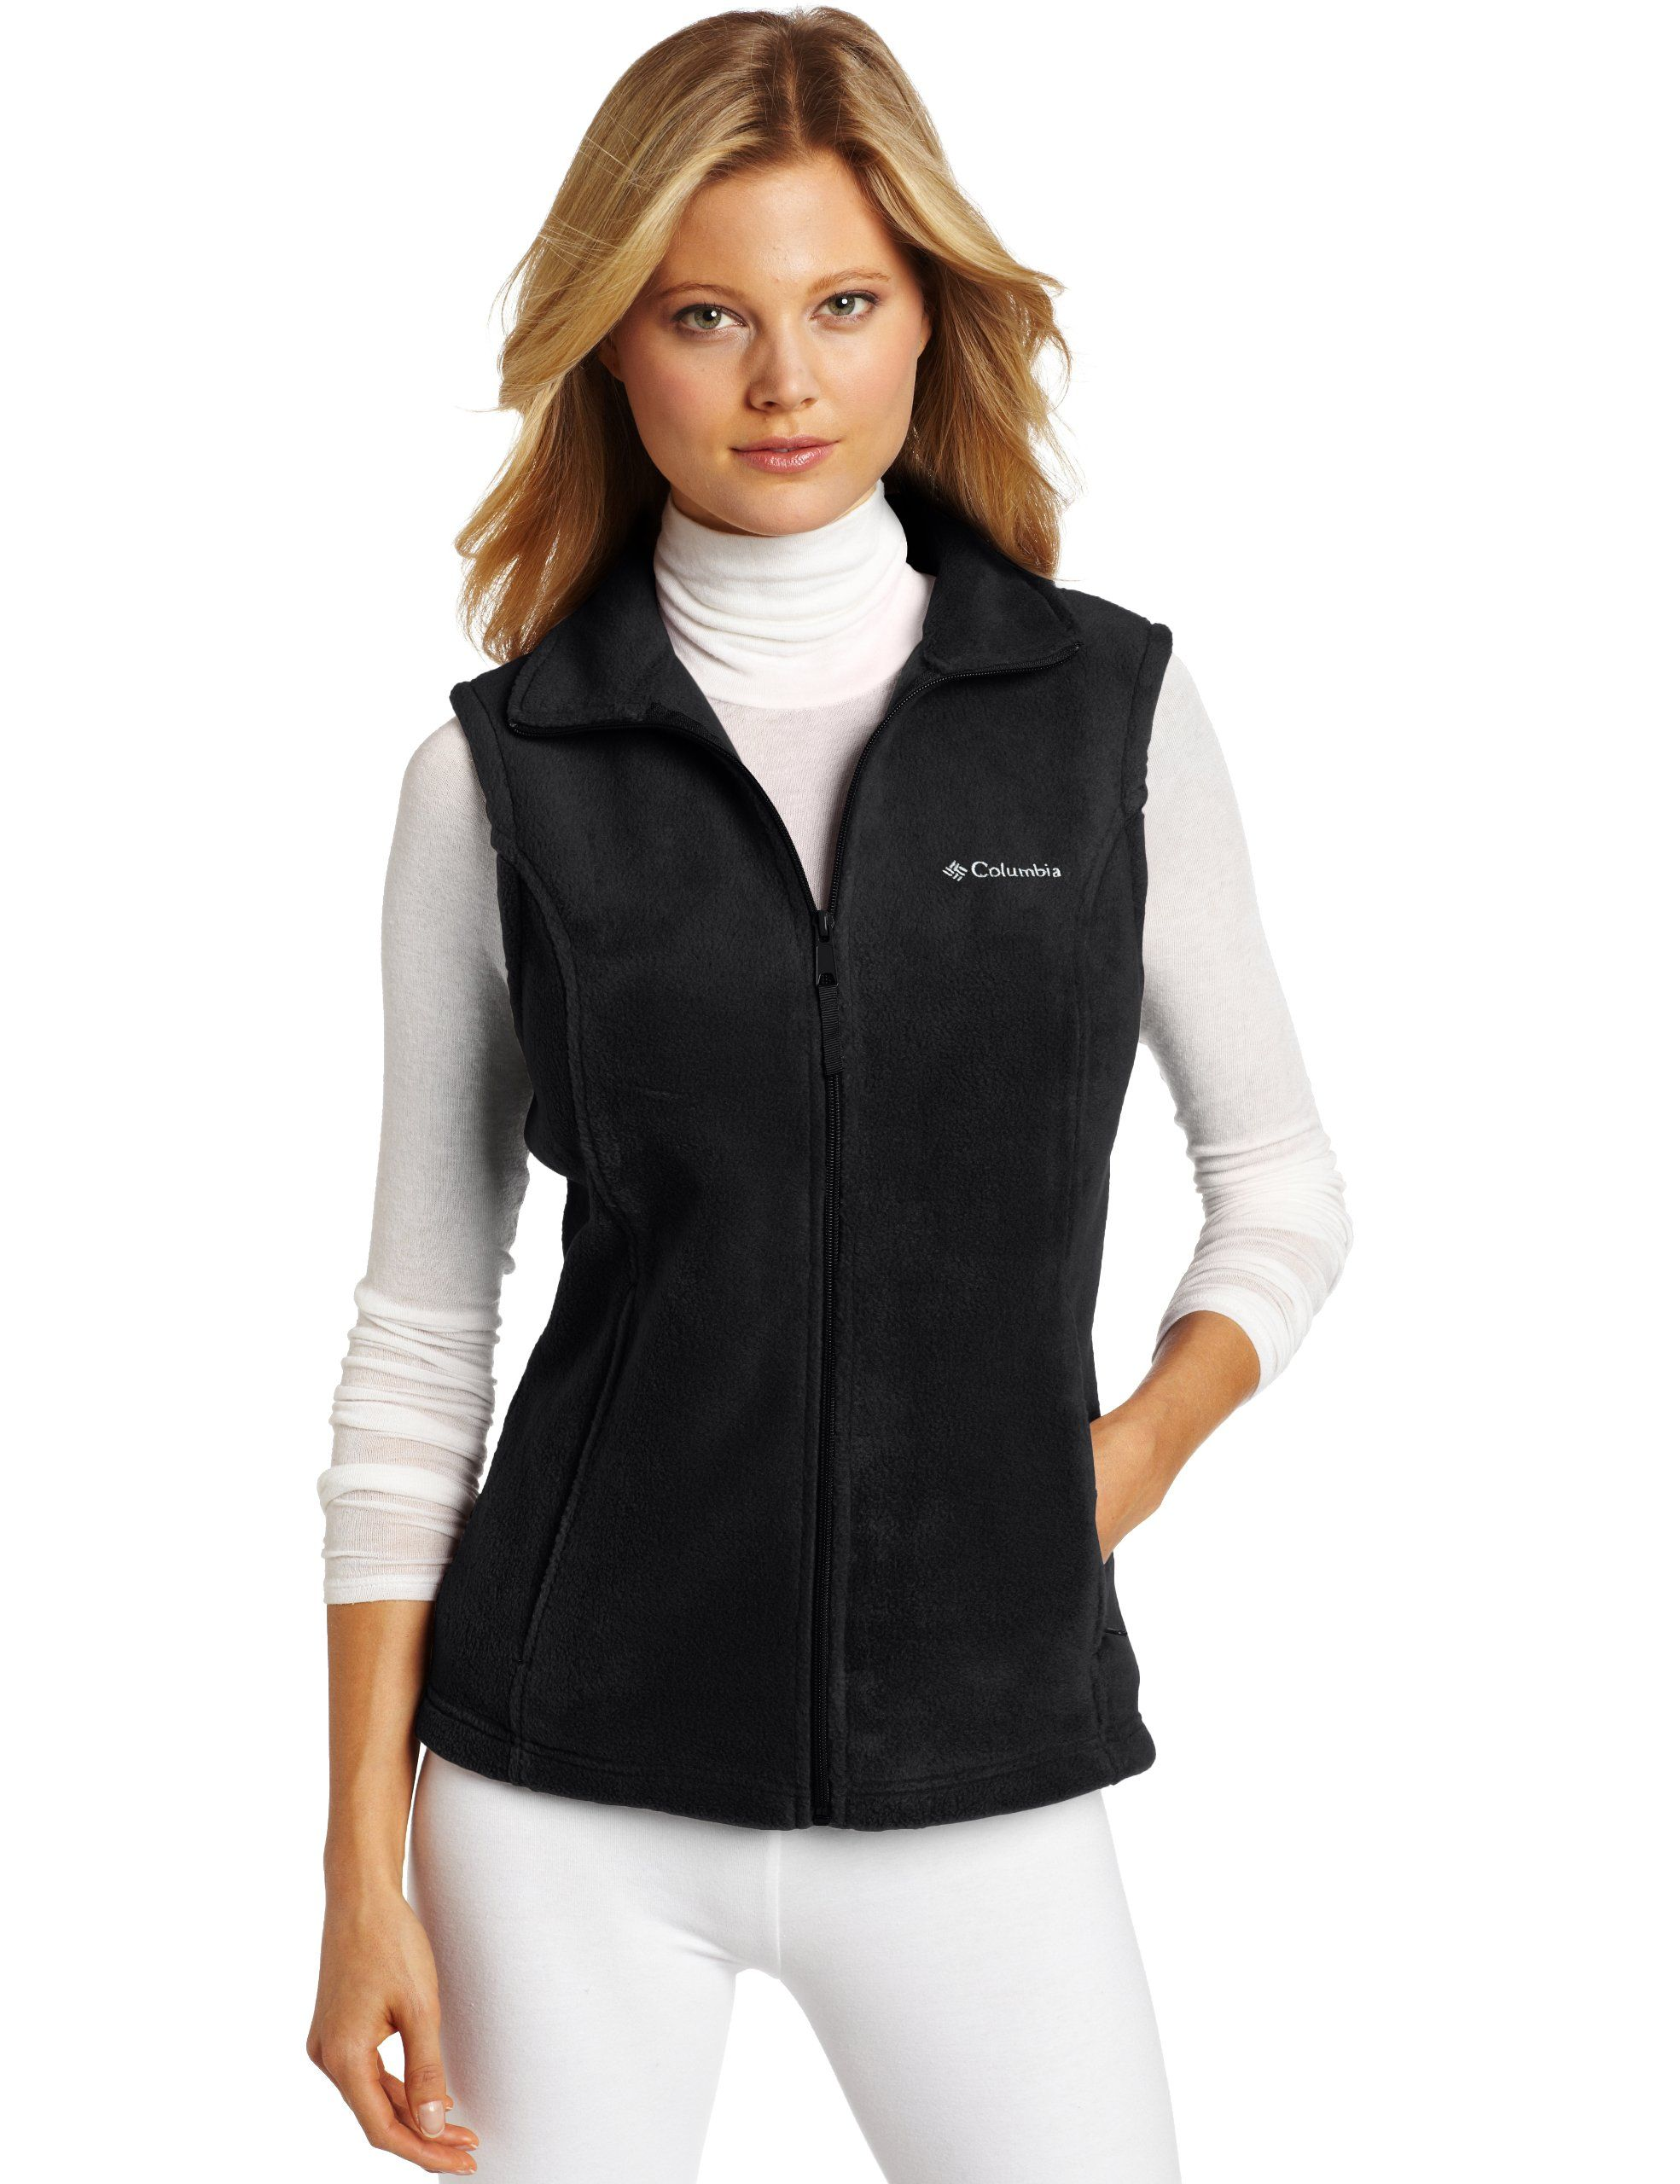 81e3a59900ee2 Columbia Women s Benton Springs Vest at Amazon Women s Clothing store  Fleece  Outerwear Vests